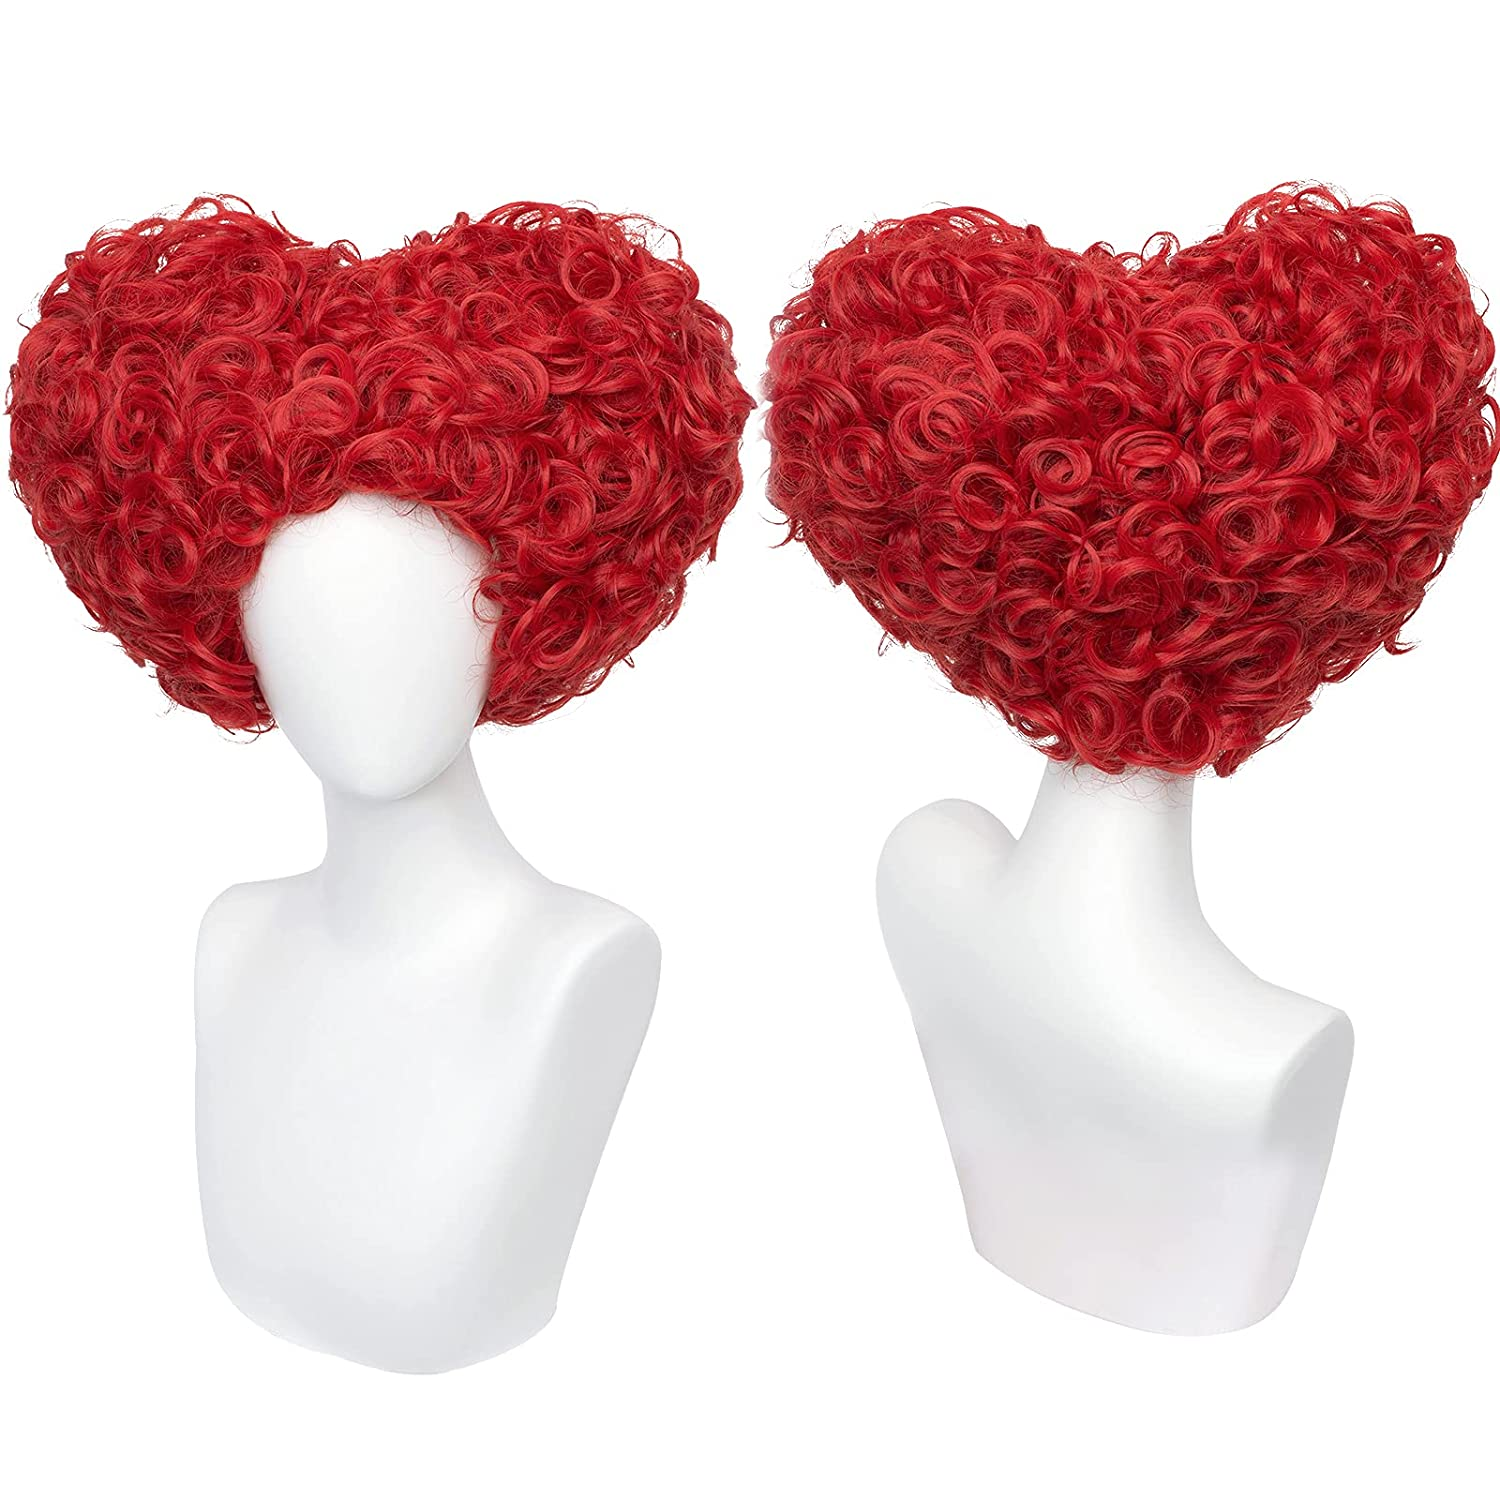 Labeauté Women Red Queen of Heart Curly Synthetic Ranking TOP7 H Lowest price challenge Fuffy wig